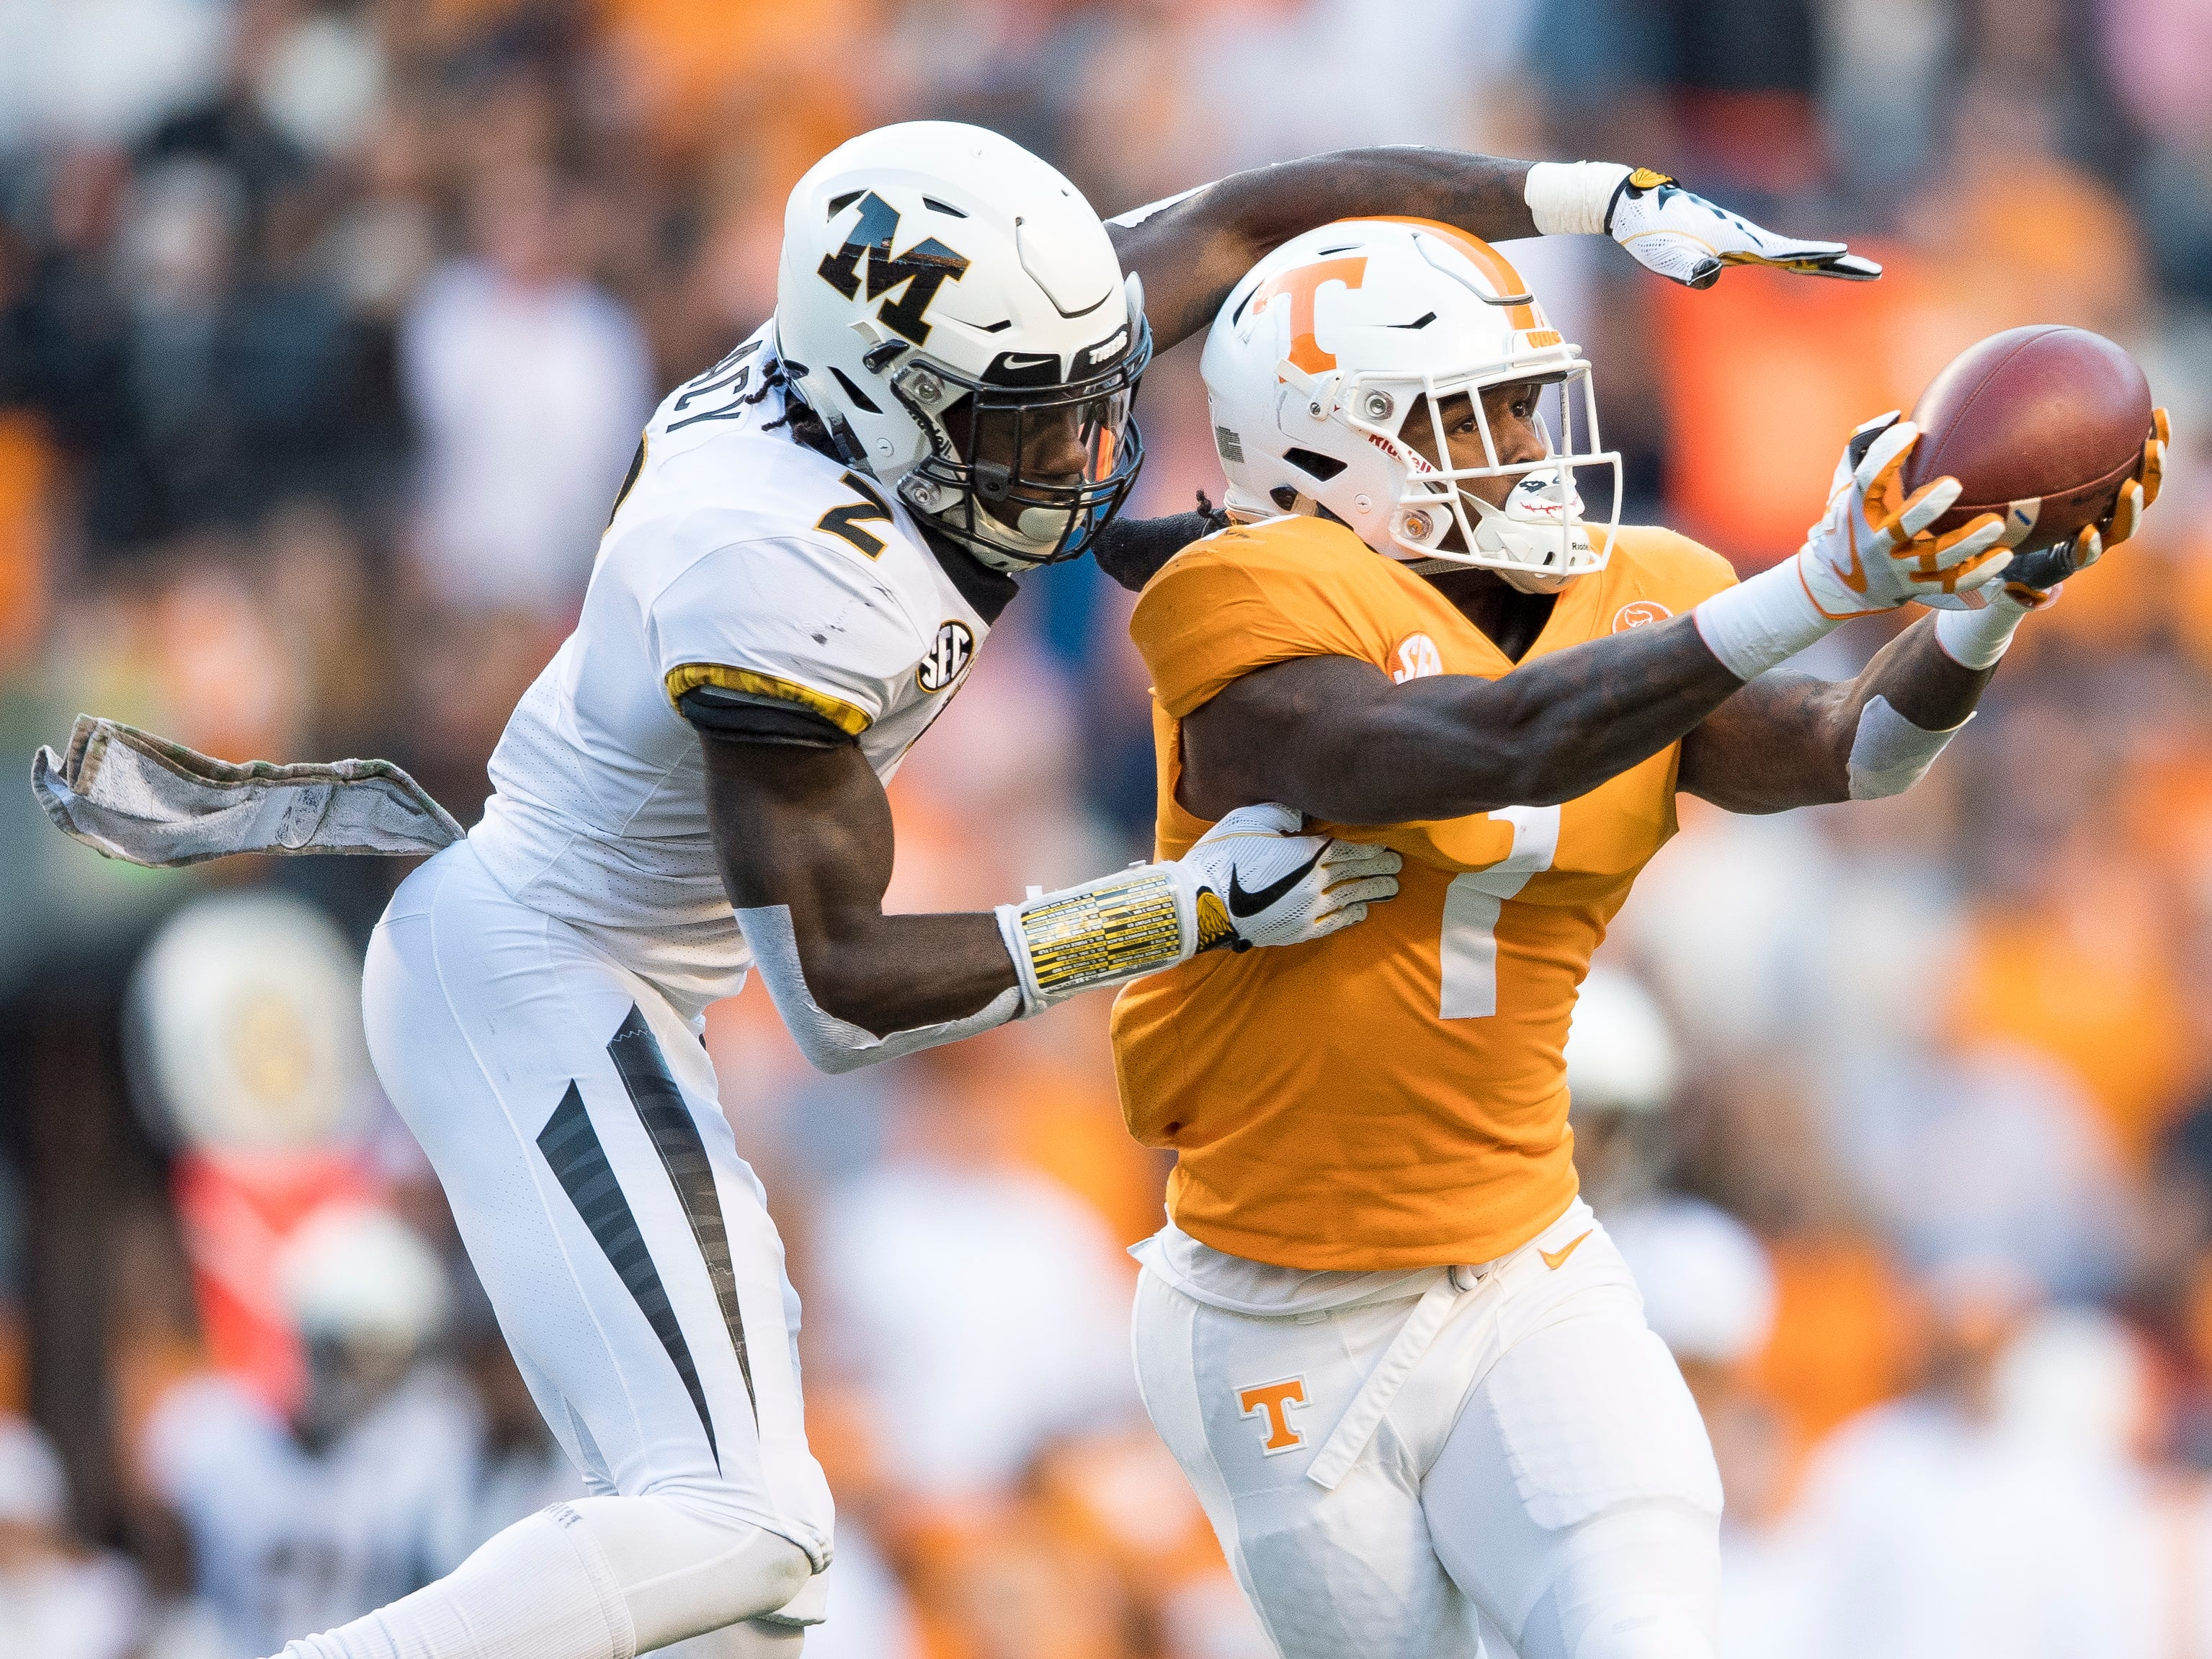 Tennessee wide receiver Marquez Callaway (1) makes a catch while defended by Missouri defensive back DeMarkus Acy (2) during the Tennessee Volunteers game against the Missouri Tigers in Neyland Stadium on Saturday, November 17, 2018.